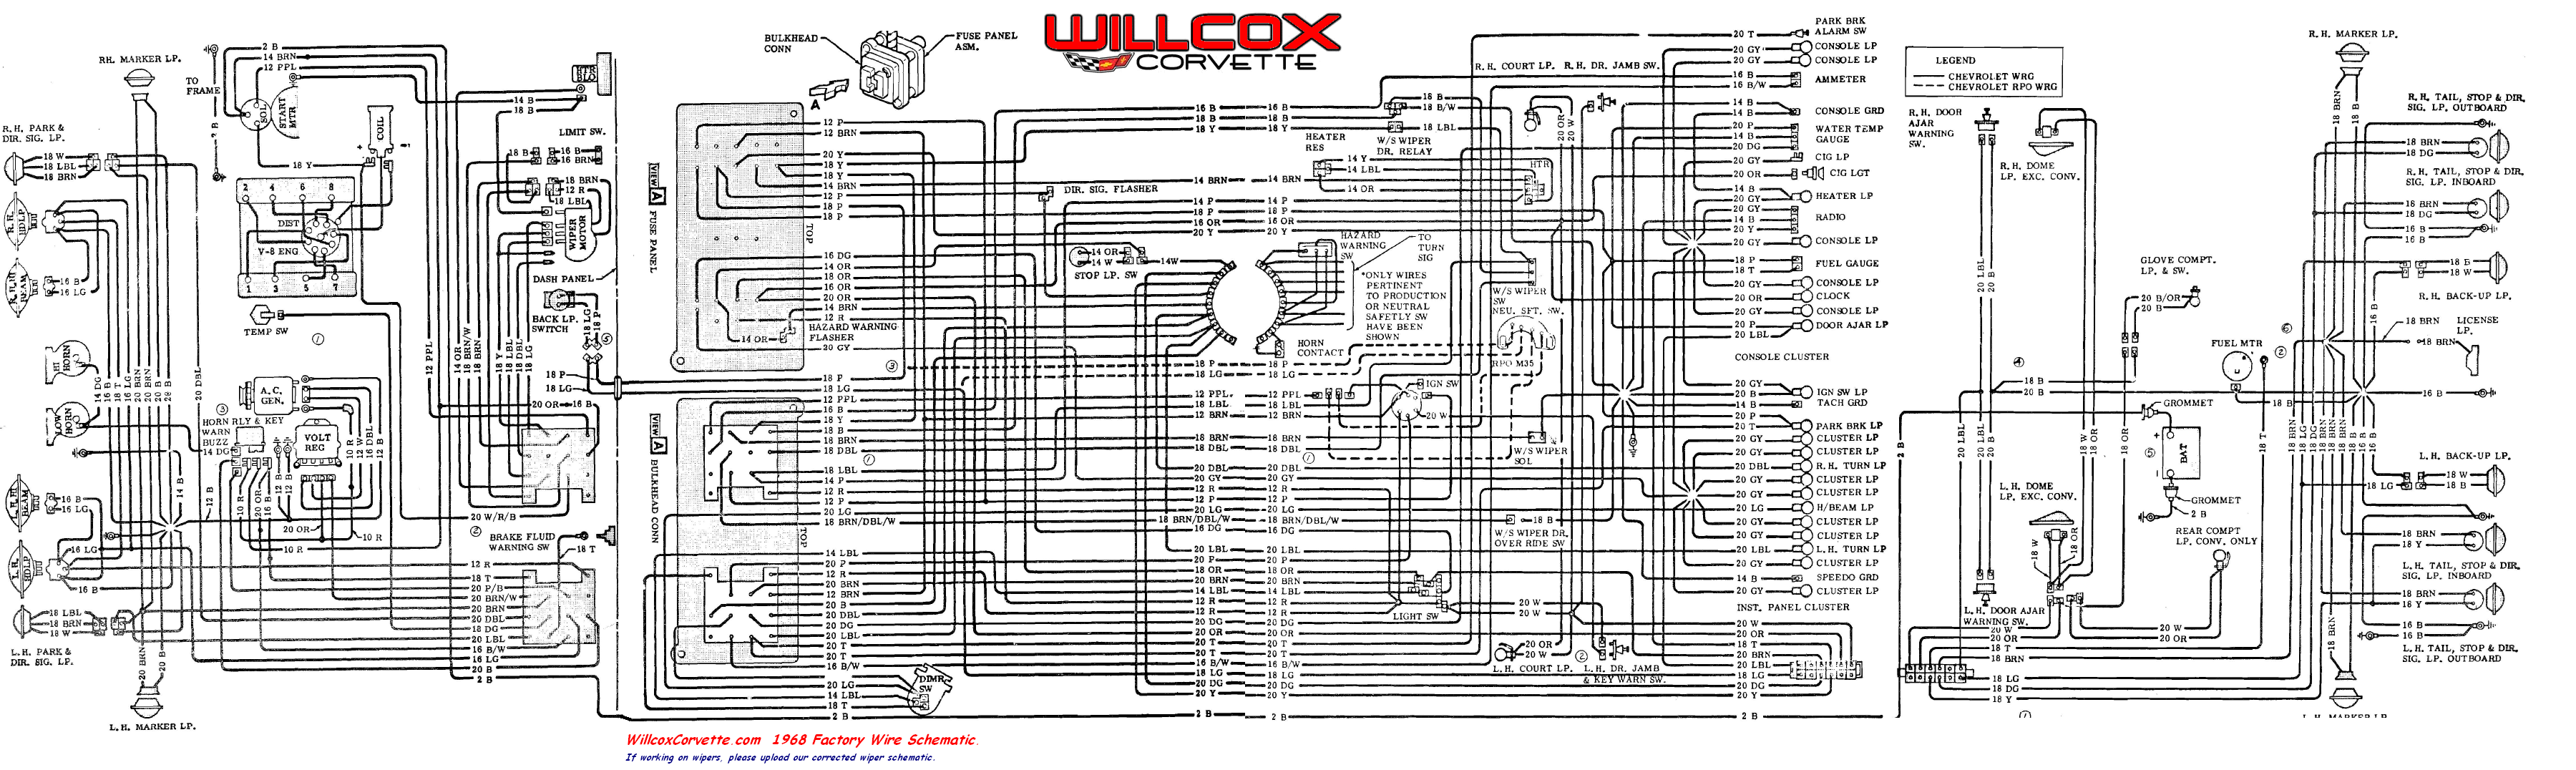 68 wire tracer corvette wiring diagram corvette wiring diagrams instruction 1979 corvette wiring diagram at n-0.co